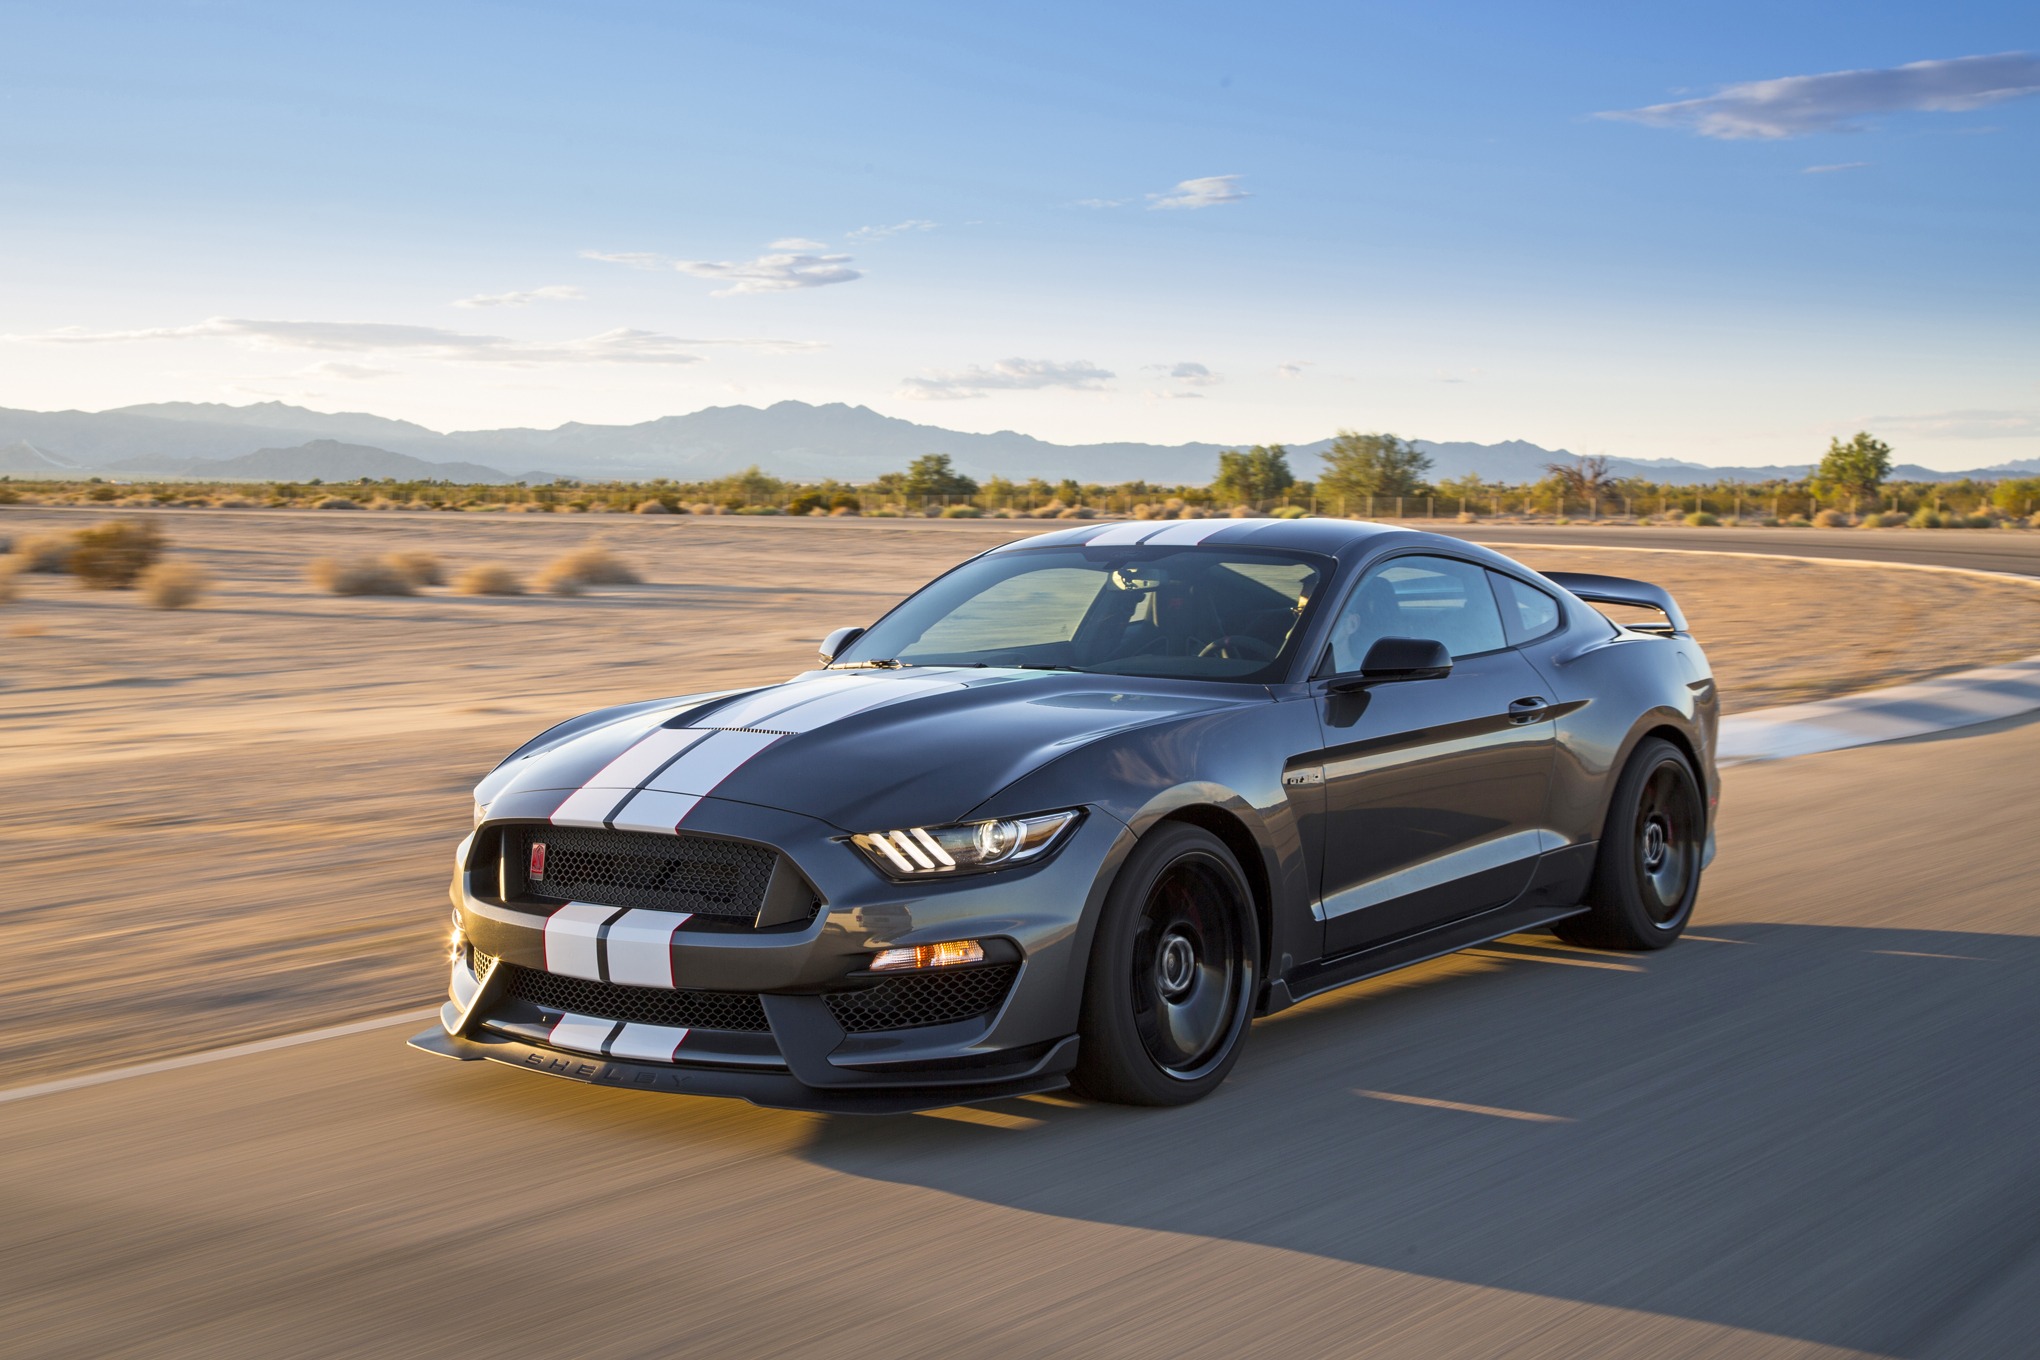 2016 ford shelby gt350r mustang head 2 head comparison